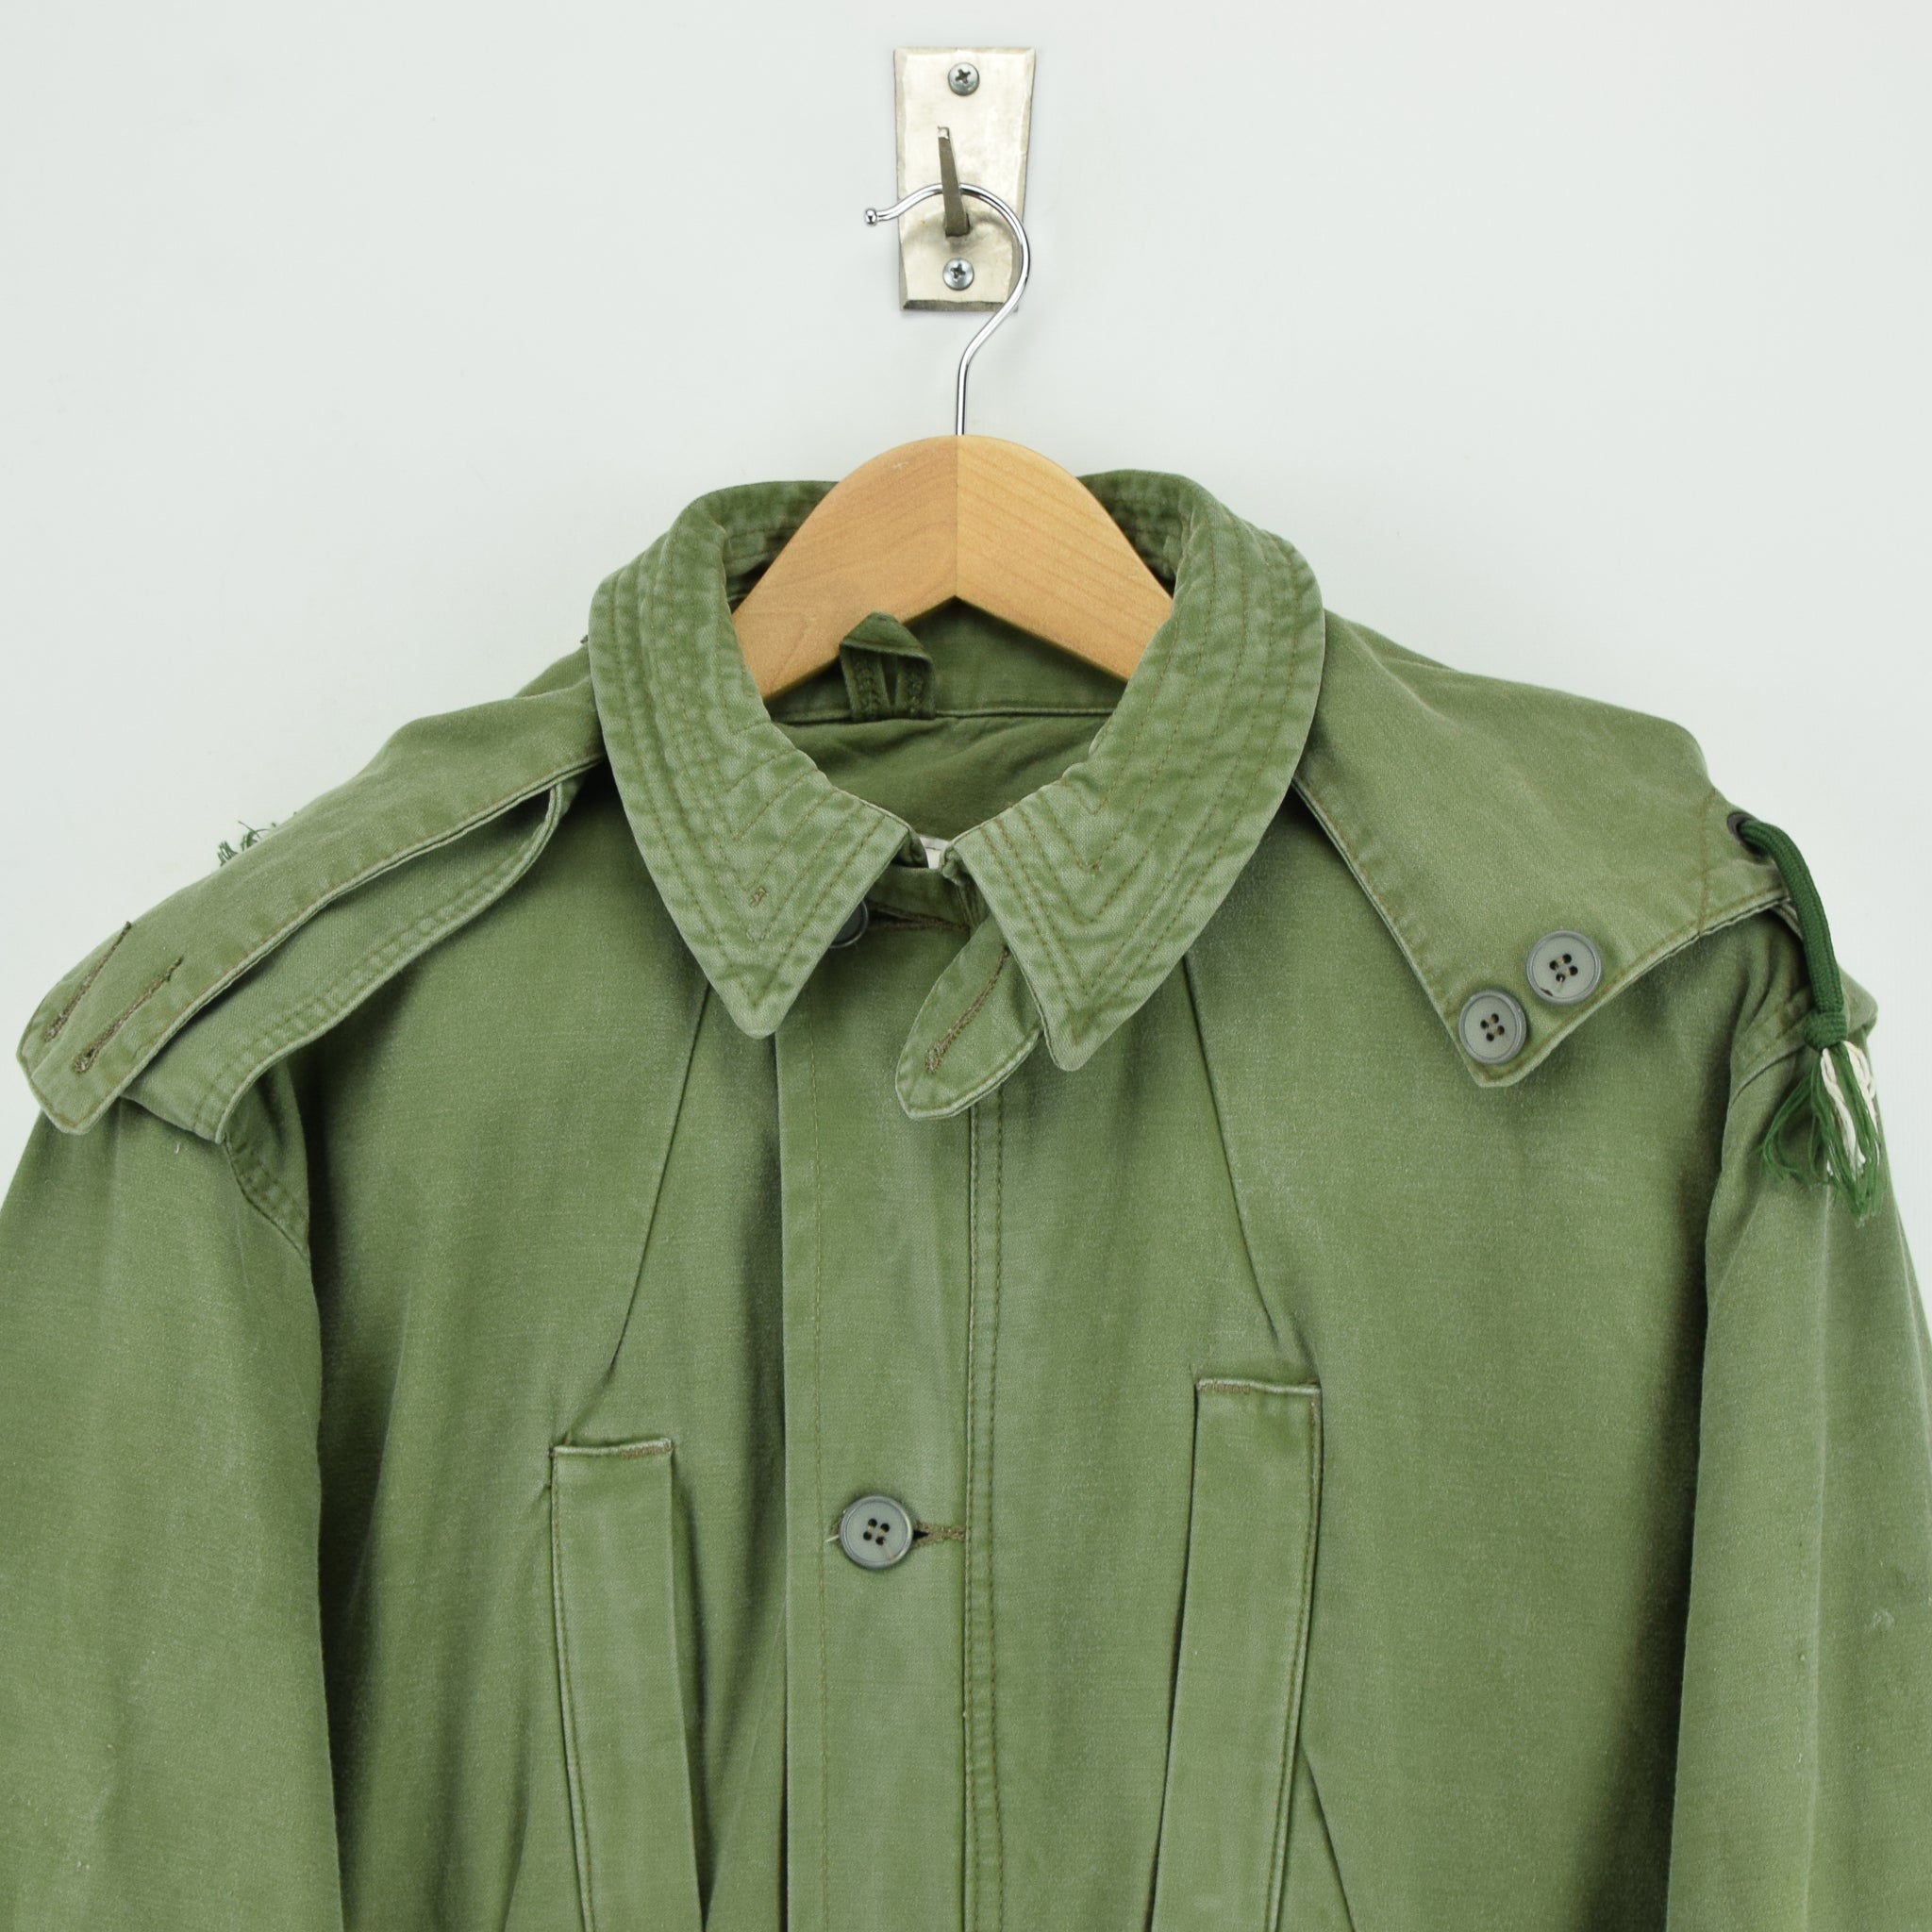 Vintage 90s Irish Army Combat Tunic Field Jacket Green Made in Ireland M chest